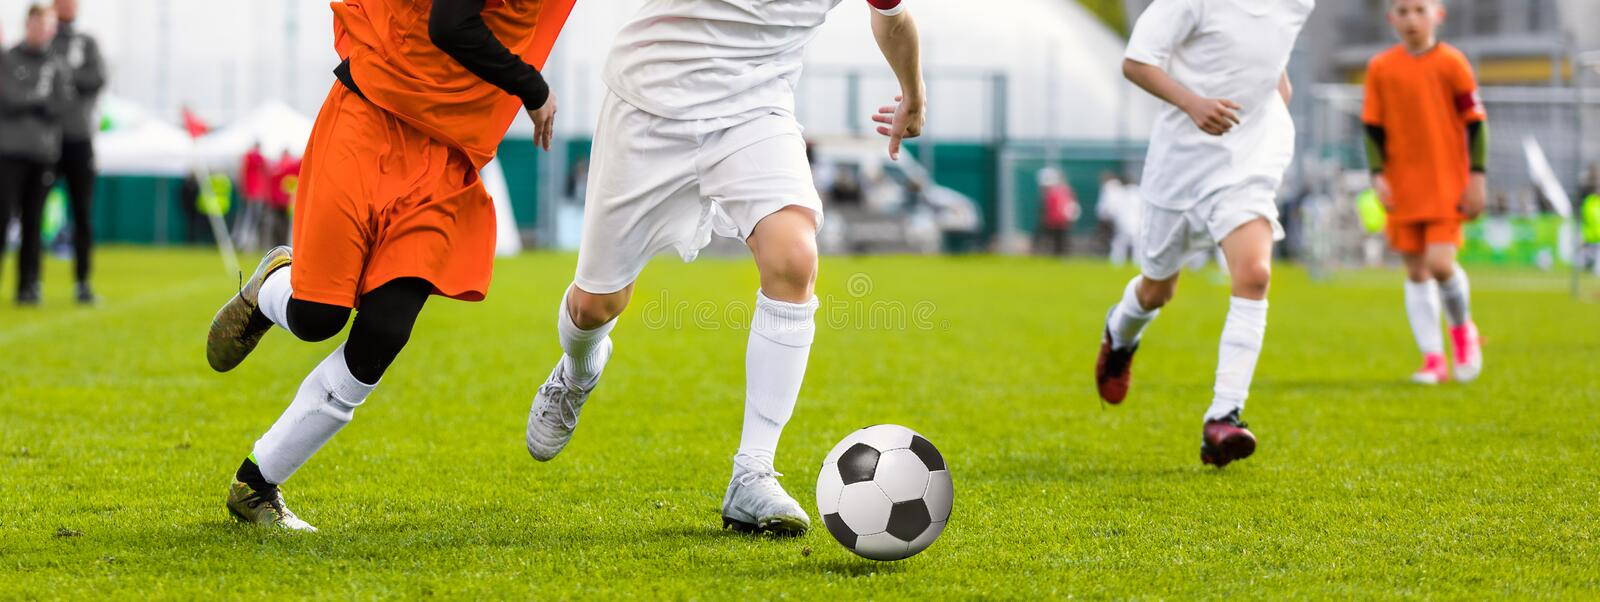 Running Young Soccer Football Players. Footballers Kicking Football Match Game. Youth Soccer Players Running After the Ball. Coach and Soccer Stadium in the stock photography